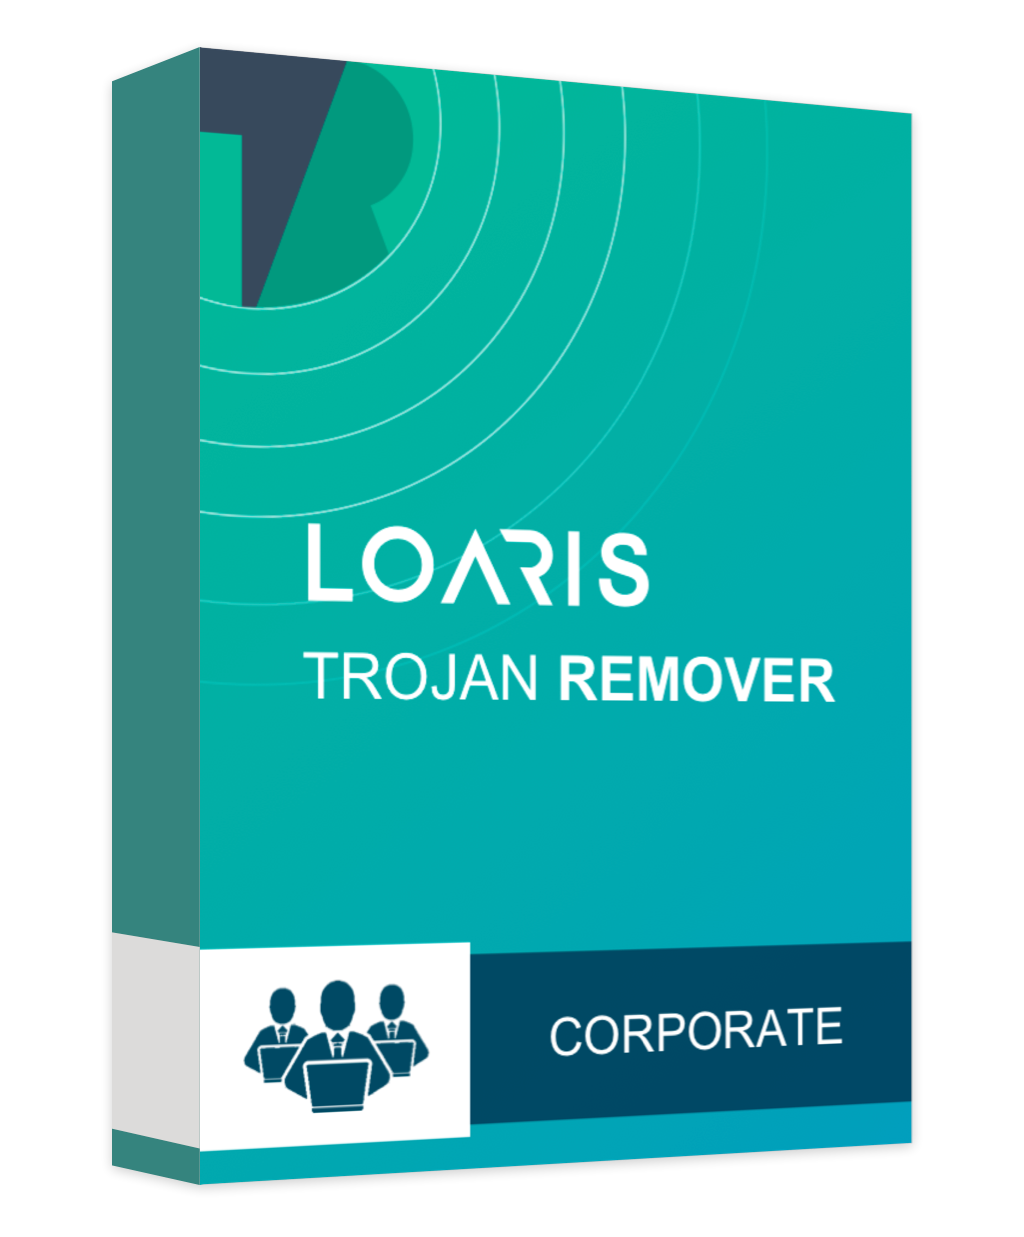 Loaris Trojan Remover für 2 Jahre - Corporate [Online Code] (Pc-remover-software)